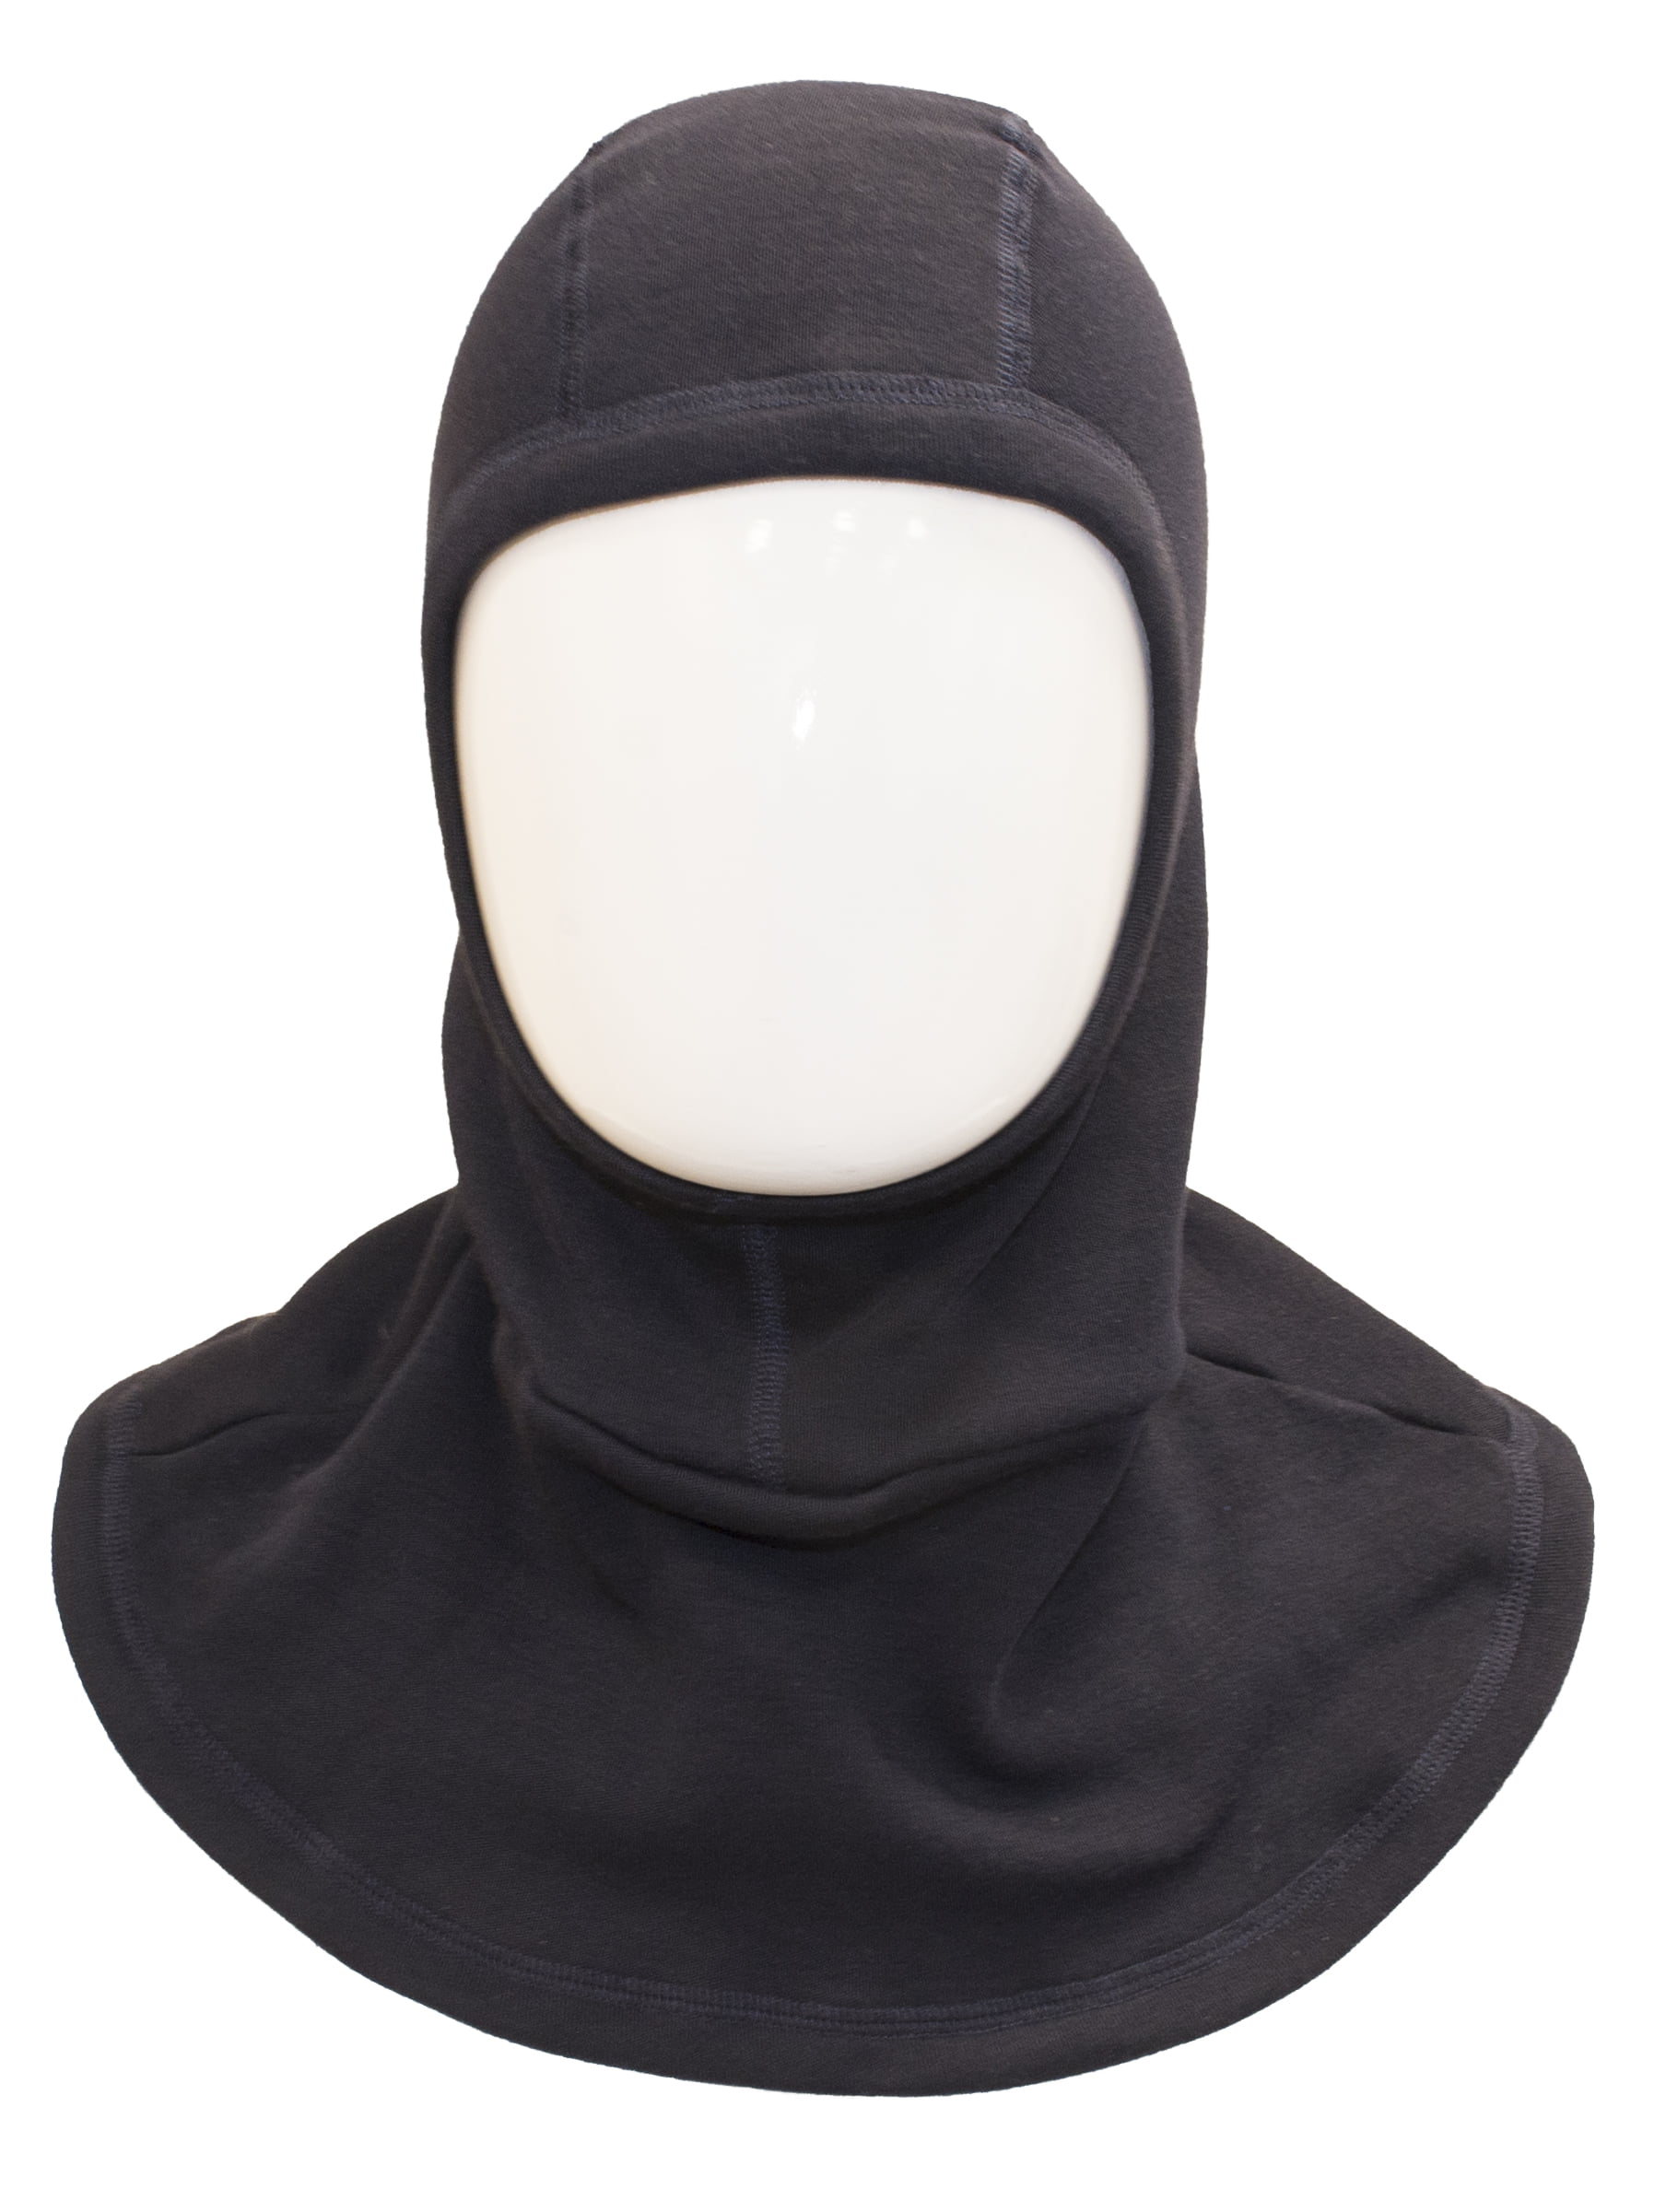 825105 Double Layer Hood